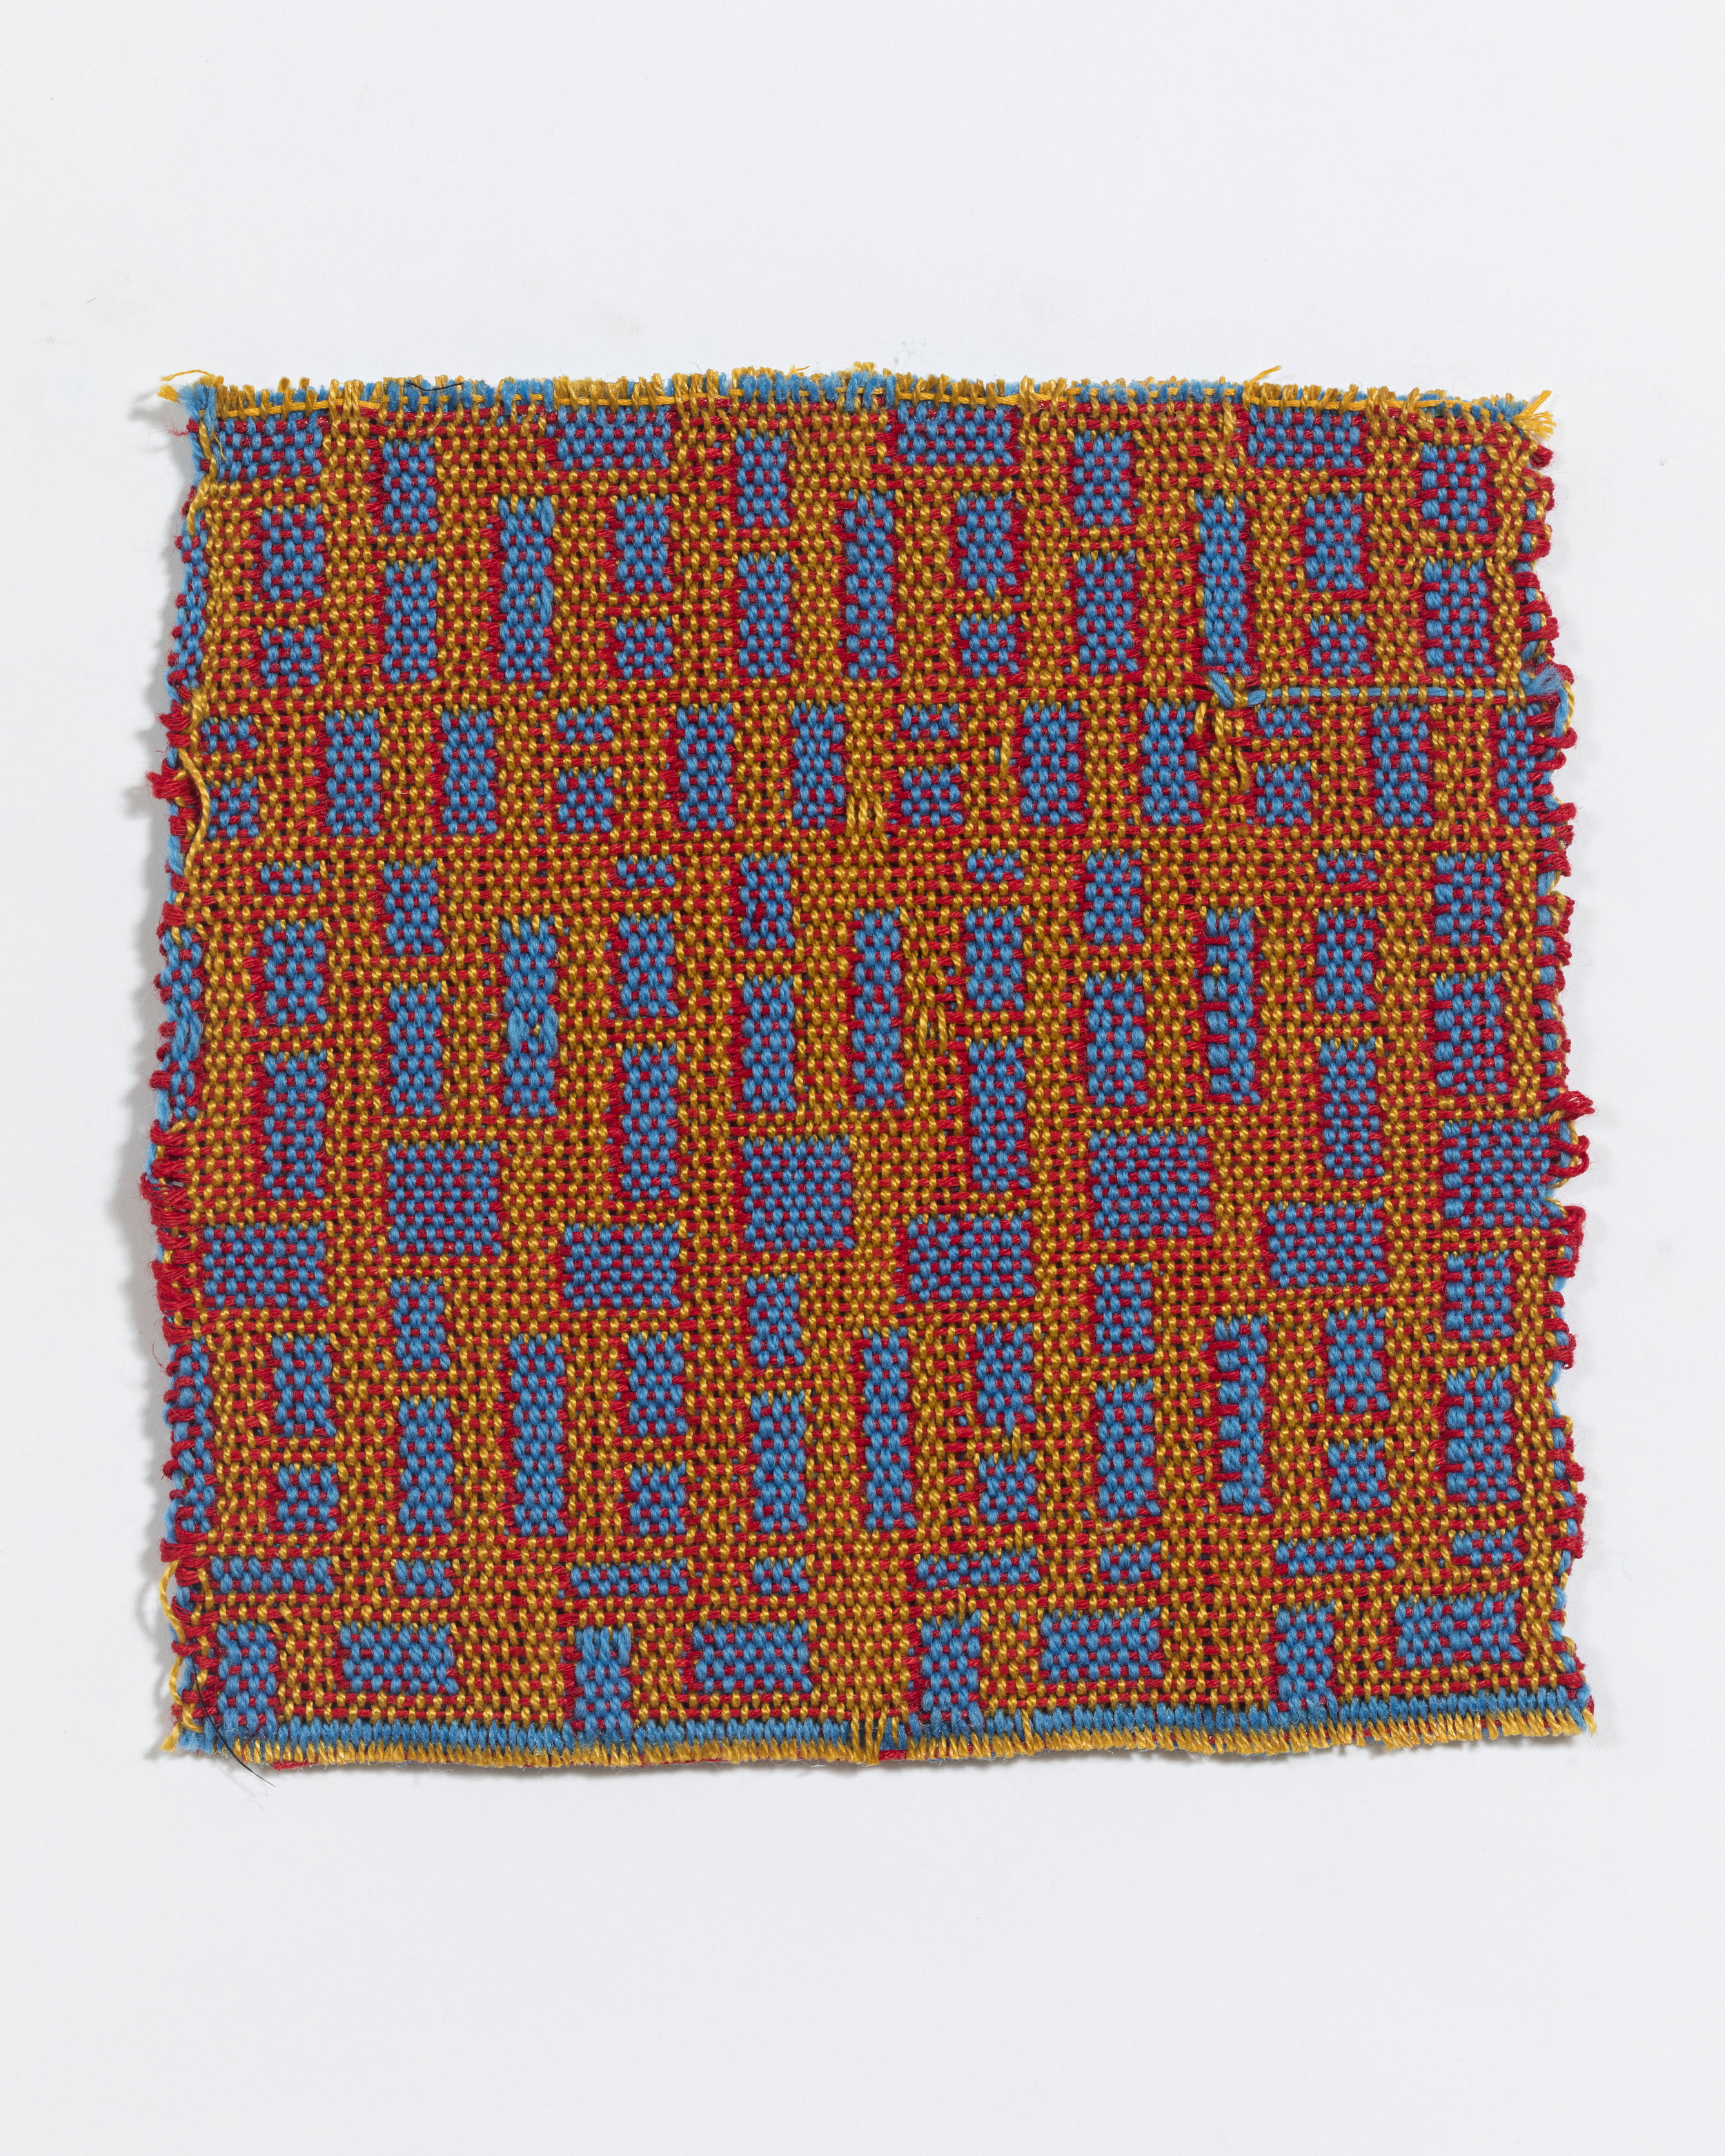 """woven on 24-harness dobby loom, approximately 6 x 8"""", found yarns"""